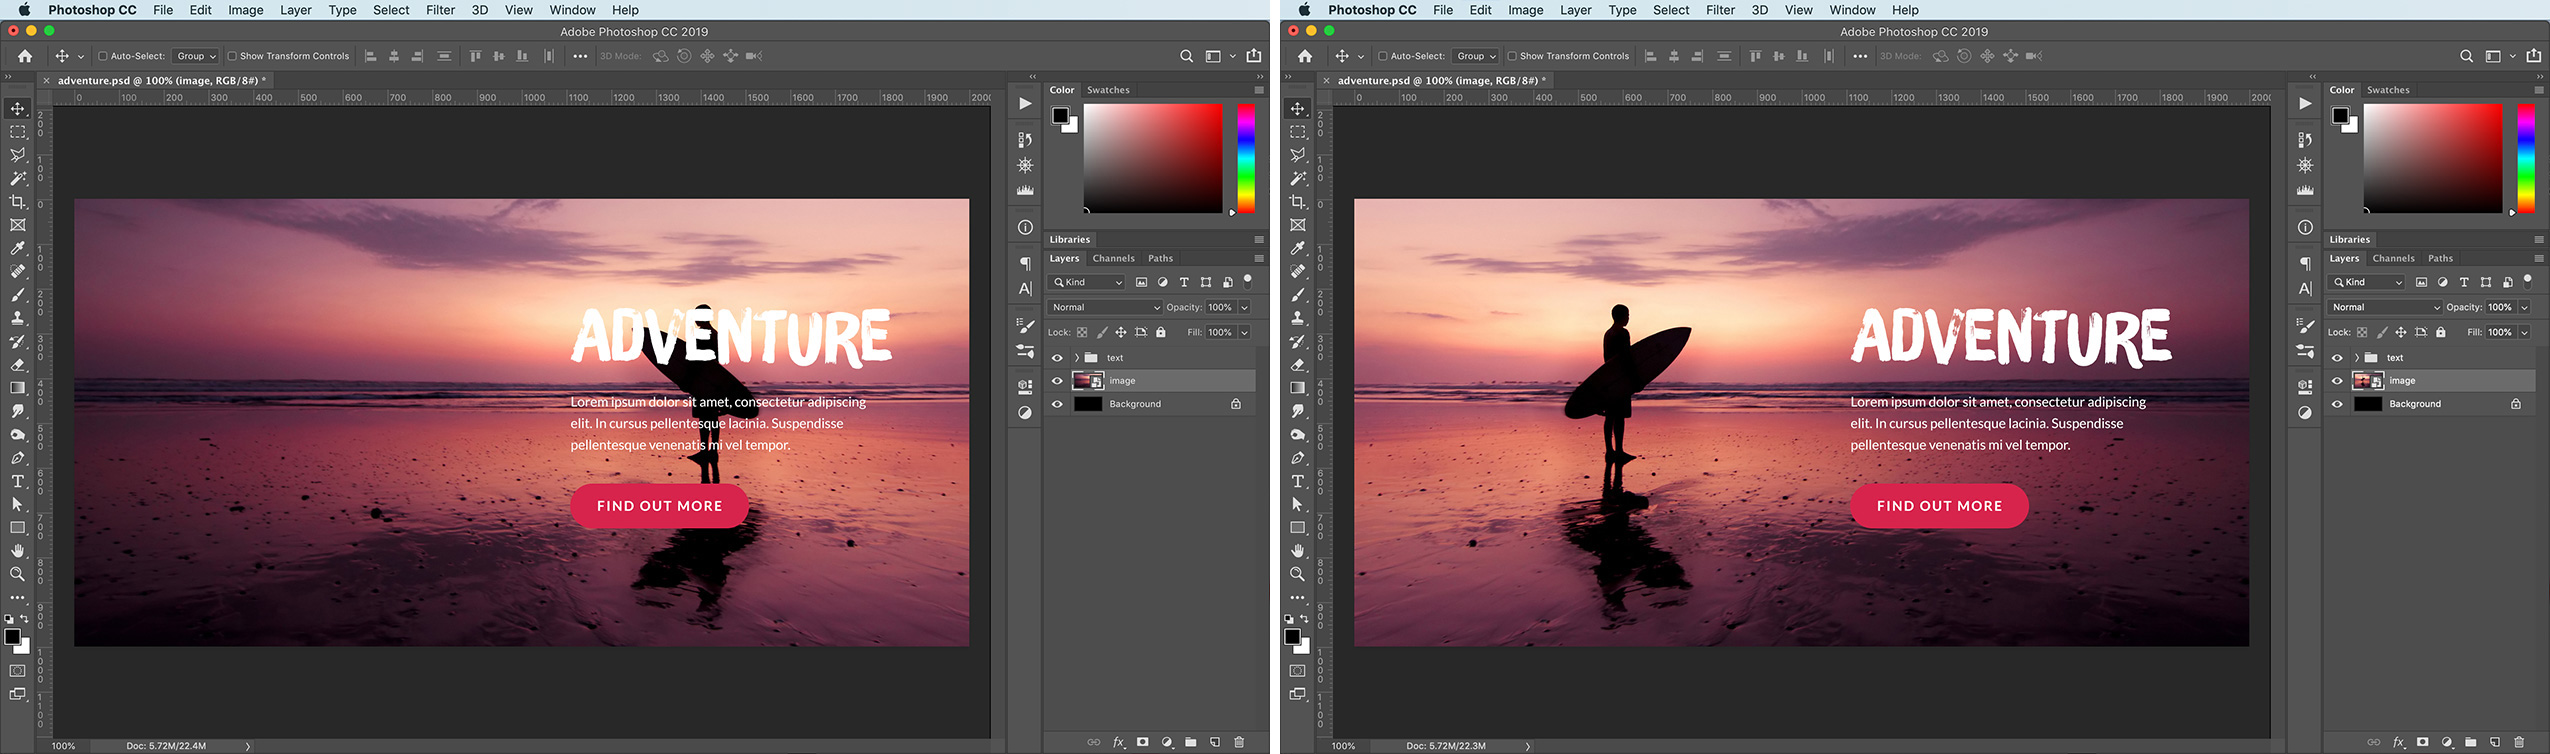 Photoshop Basics How To Flip An Image In Photoshop